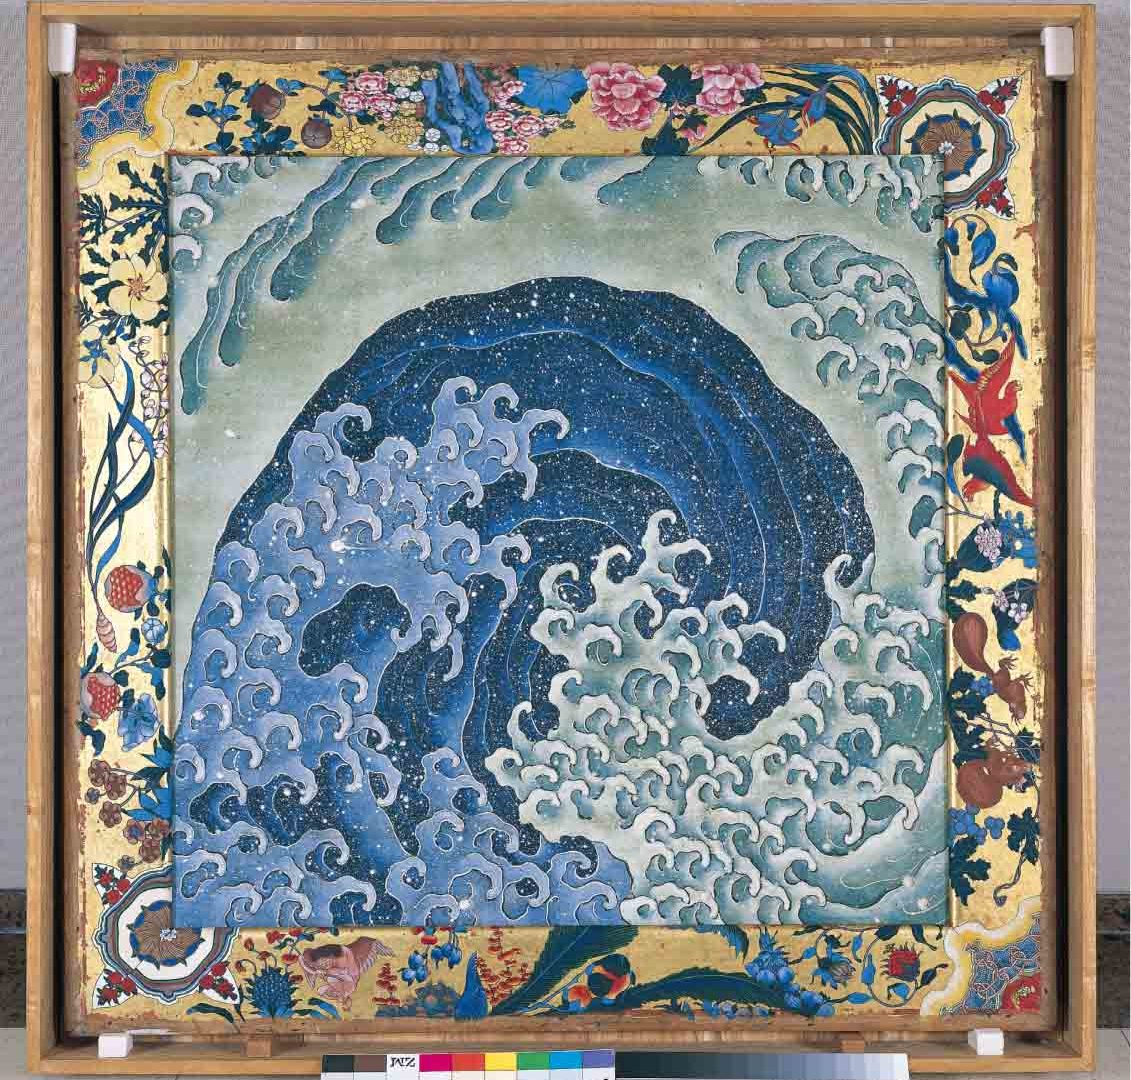 Attributed to Hokusai, with frame paintings completed by Takai Kōzan (1806–1883). Waves. Two ceiling panels for a festival cart, ink and colour on paulownia wood, 1845. Kanmachi Neighbourhood Council, Obuse, Nagano Prefectural Treasure. On display from 25 May - 13 August.